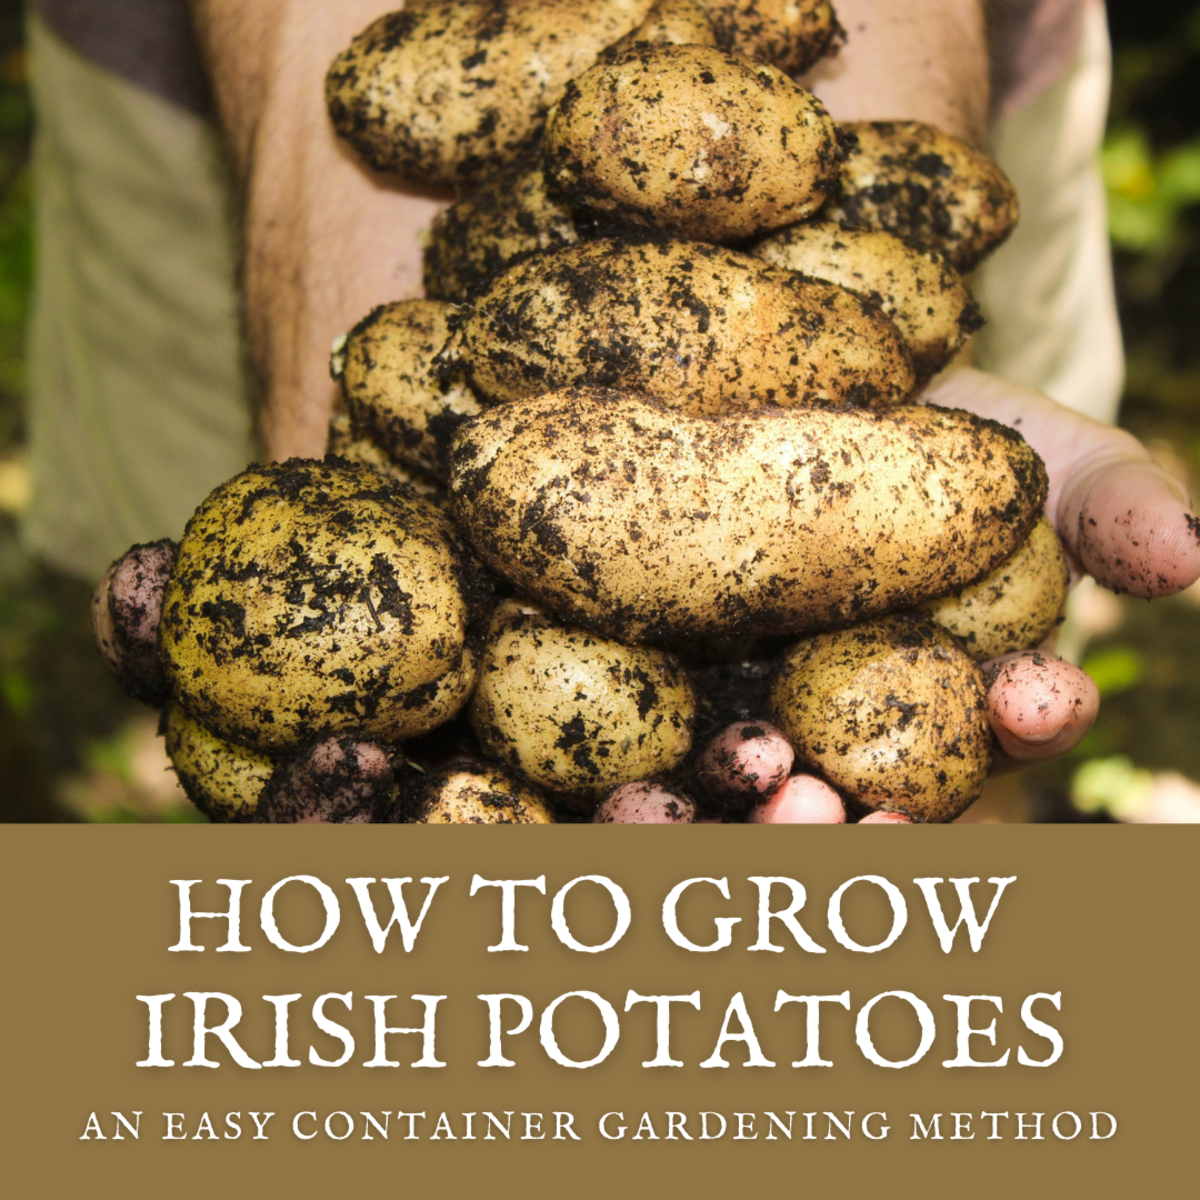 This guide will break down the process of growing Irish potatoes in the container of your choice.